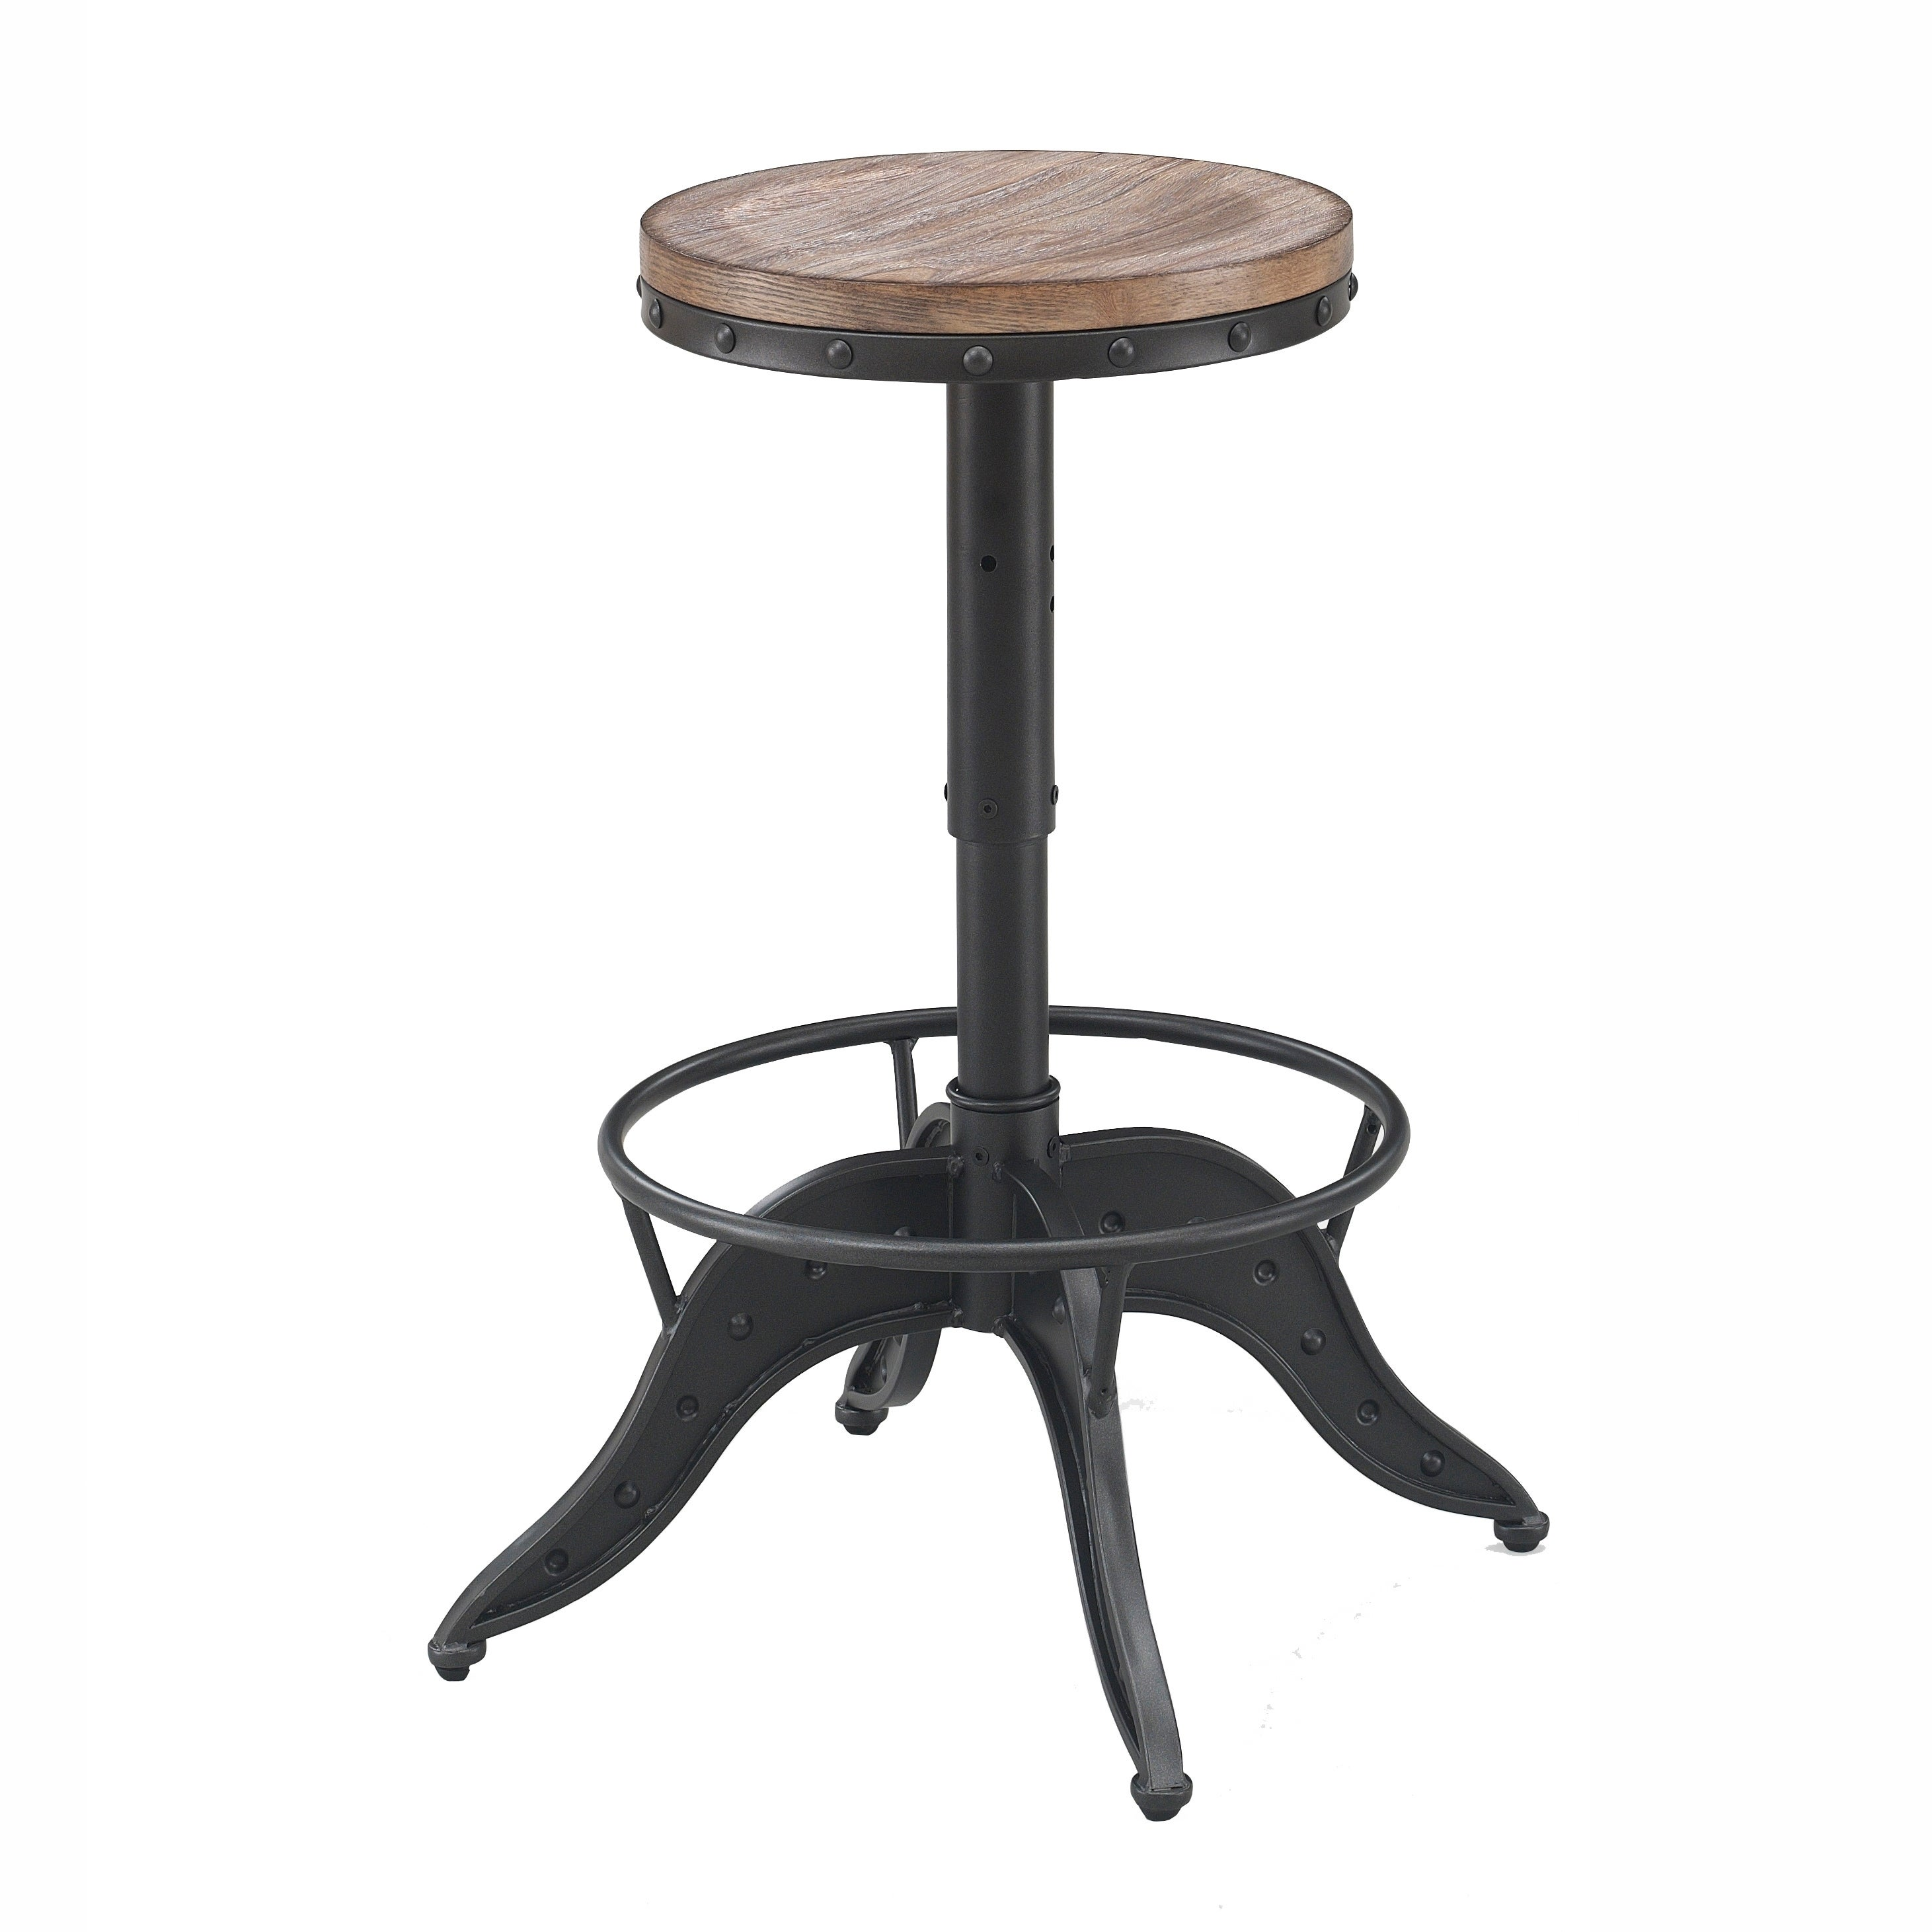 Fine Stella Adjustable Height Backless Swivel Bar Stool By Greyson Living Pabps2019 Chair Design Images Pabps2019Com